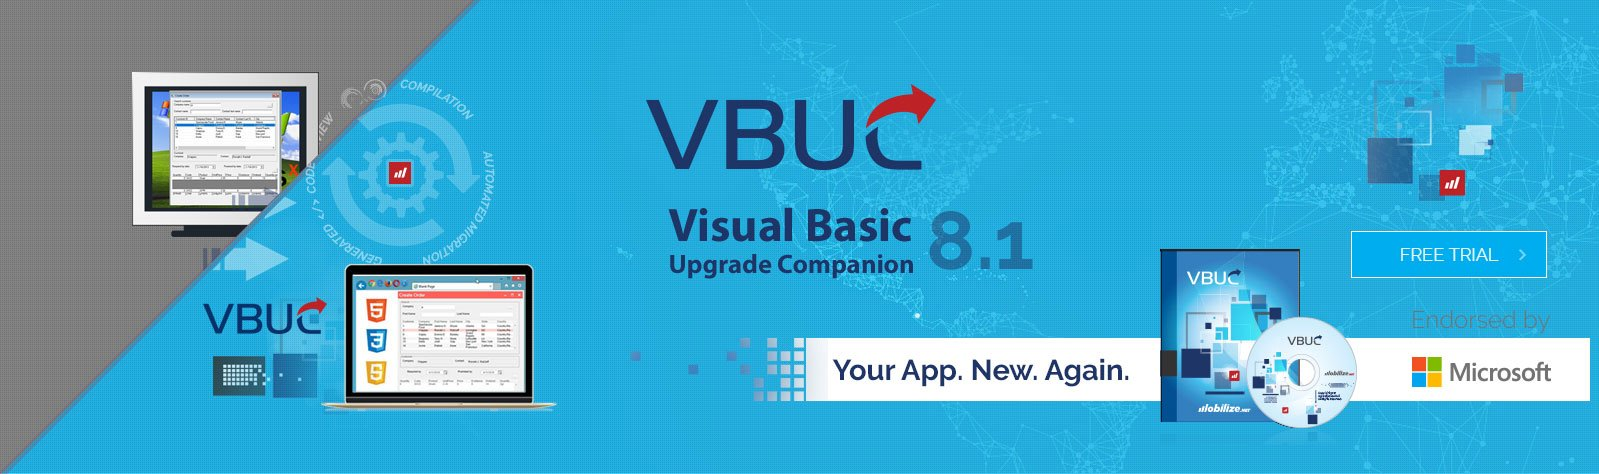 Free download new VBUC 8.0 by Mobilize @ Microsoft Connect(); 2017